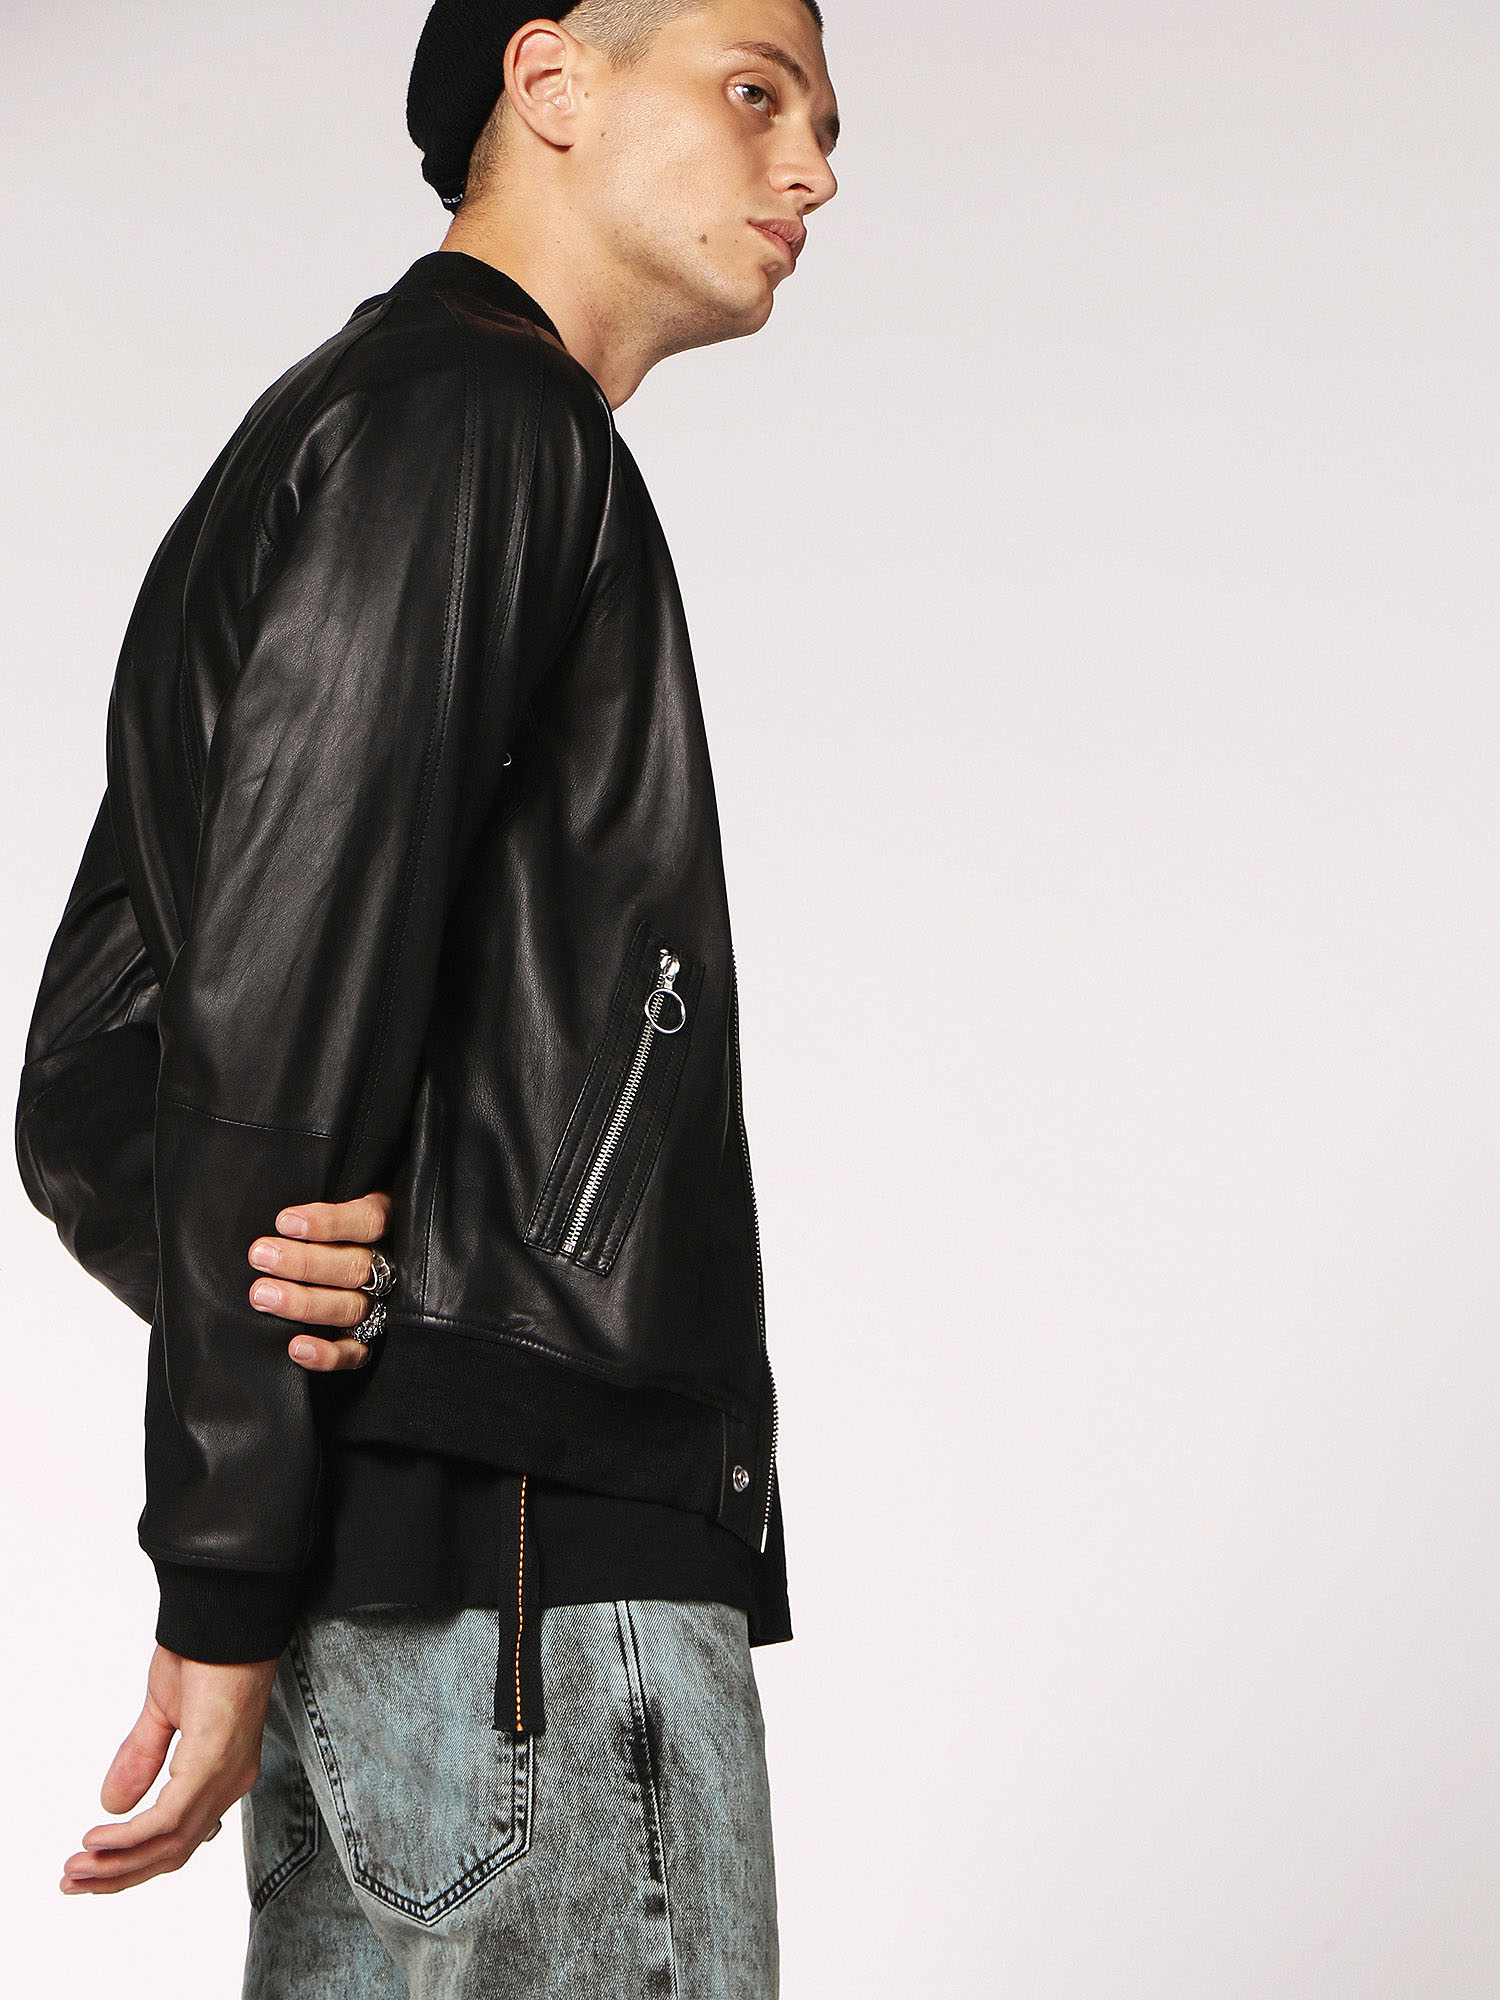 Diesel - L-PINS,  - Leather jackets - Image 3